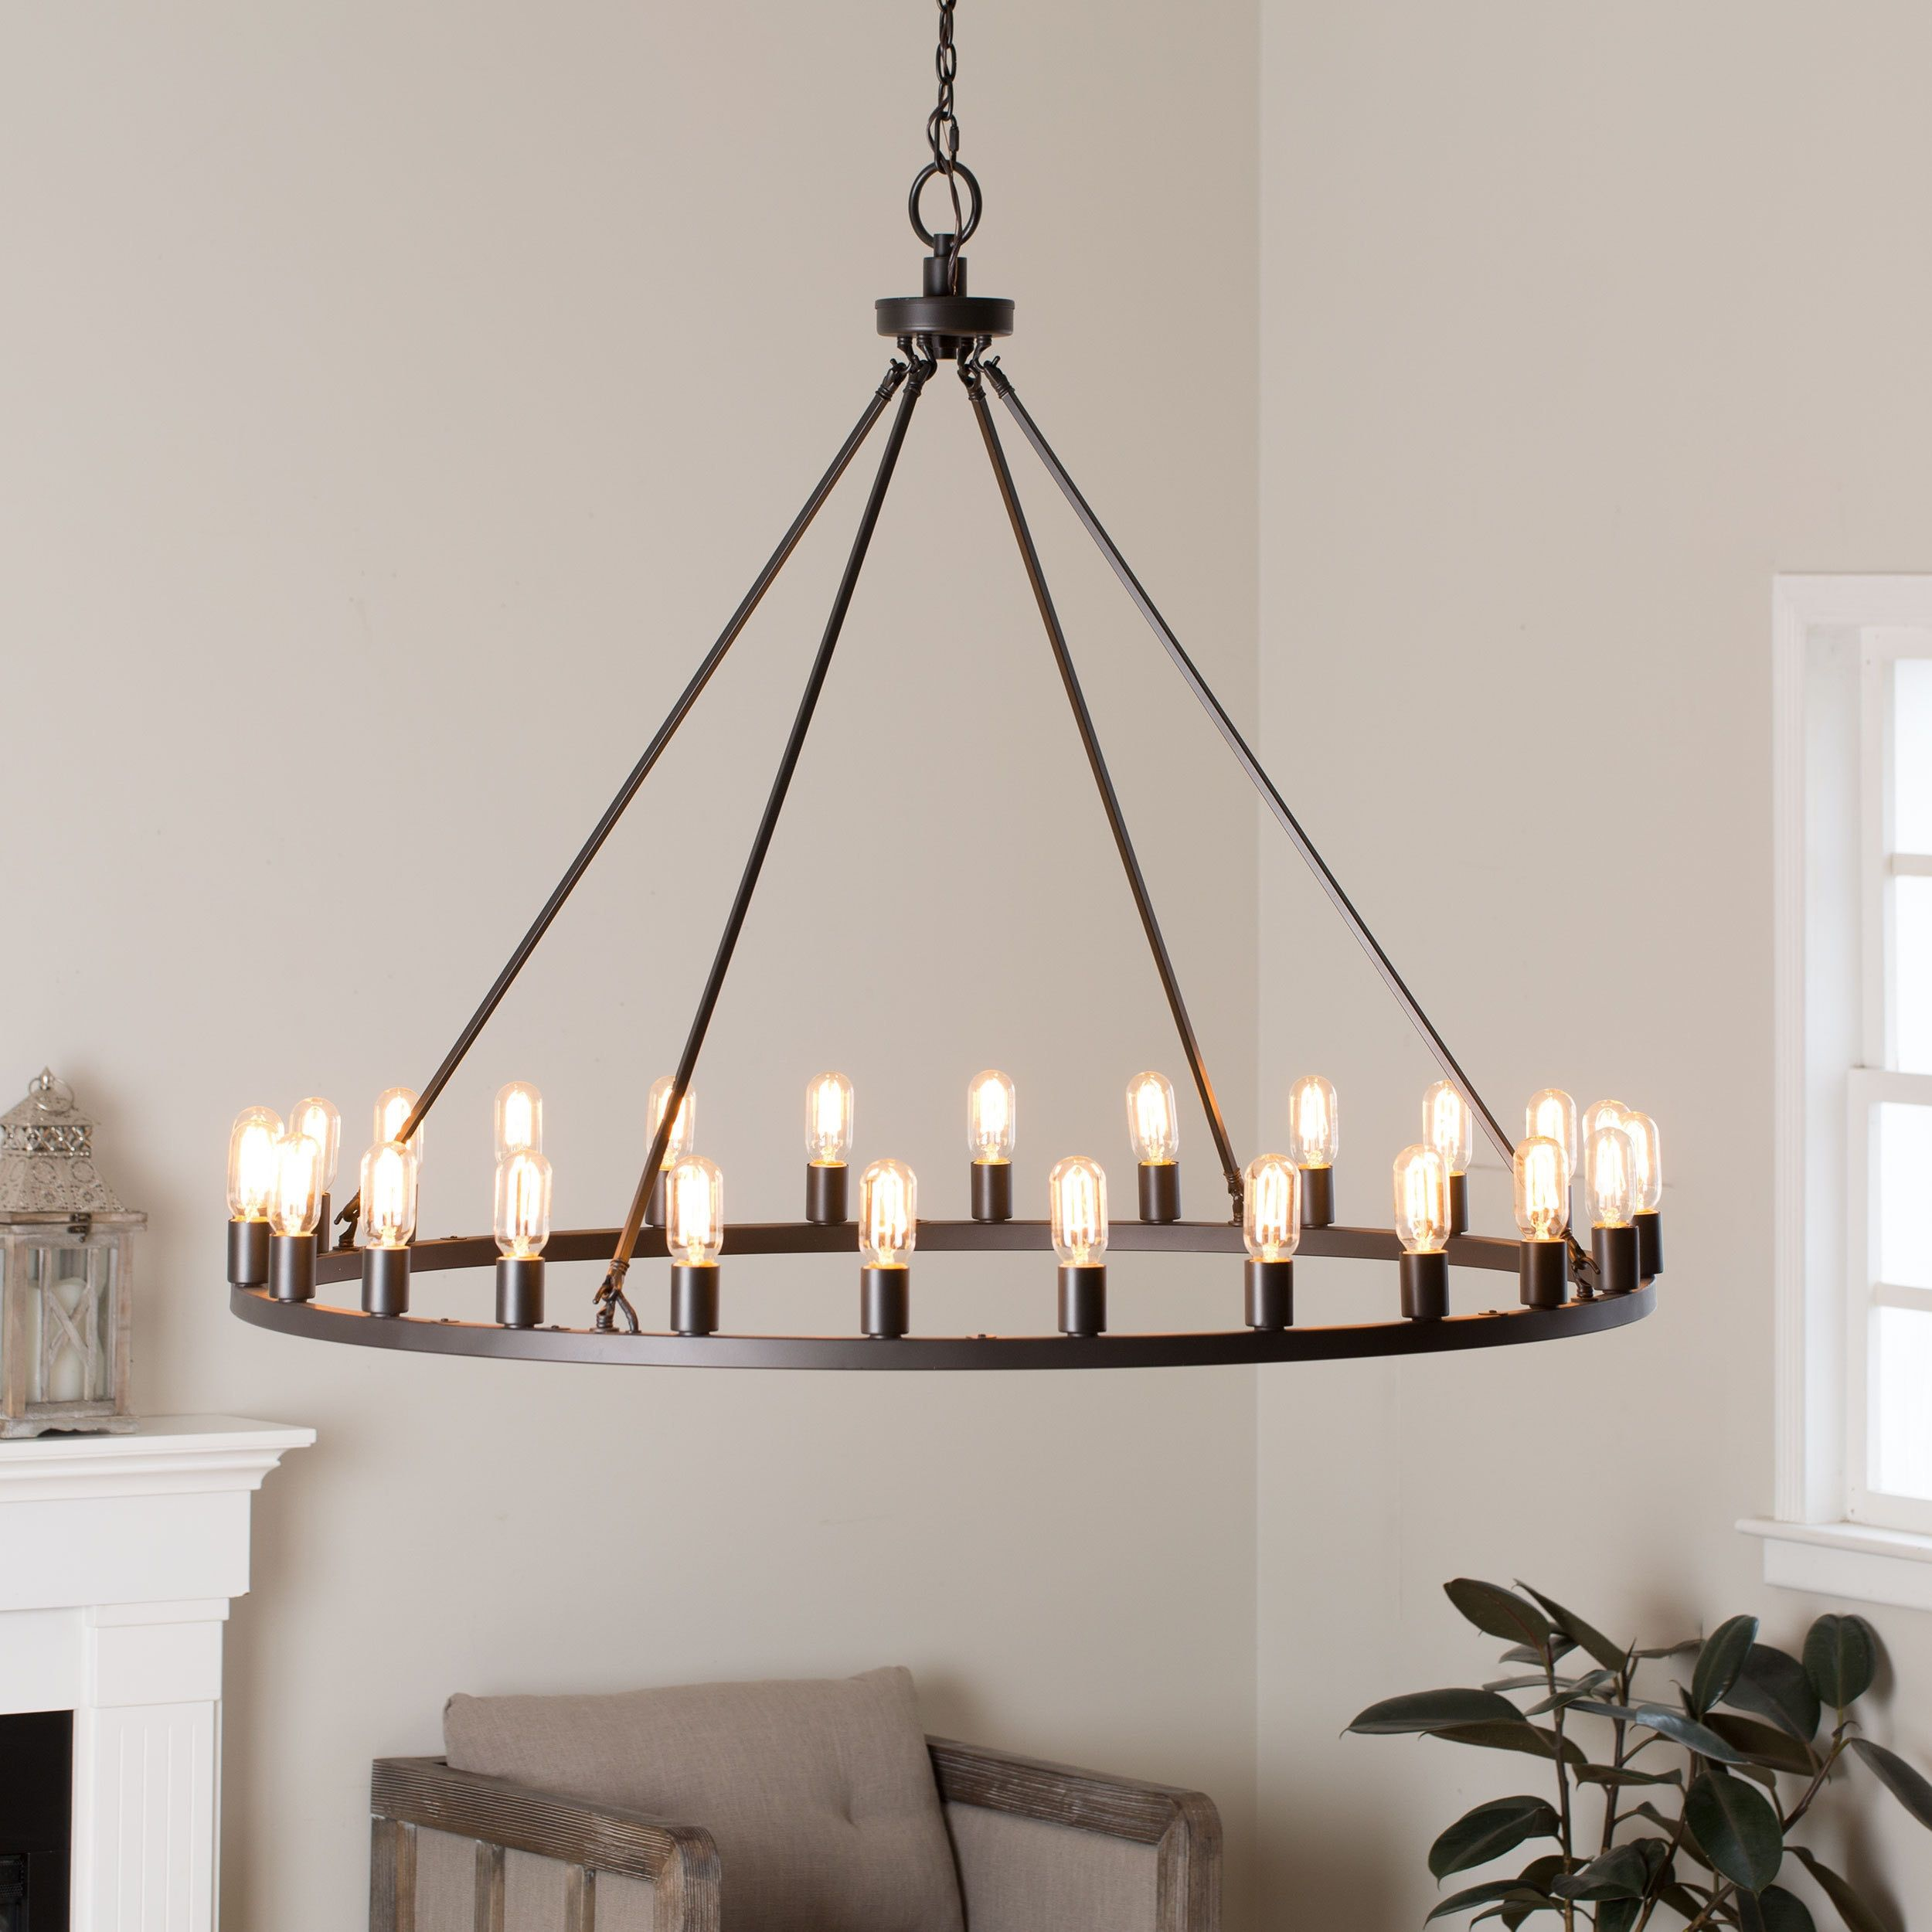 Shopping for a rustic chandelier